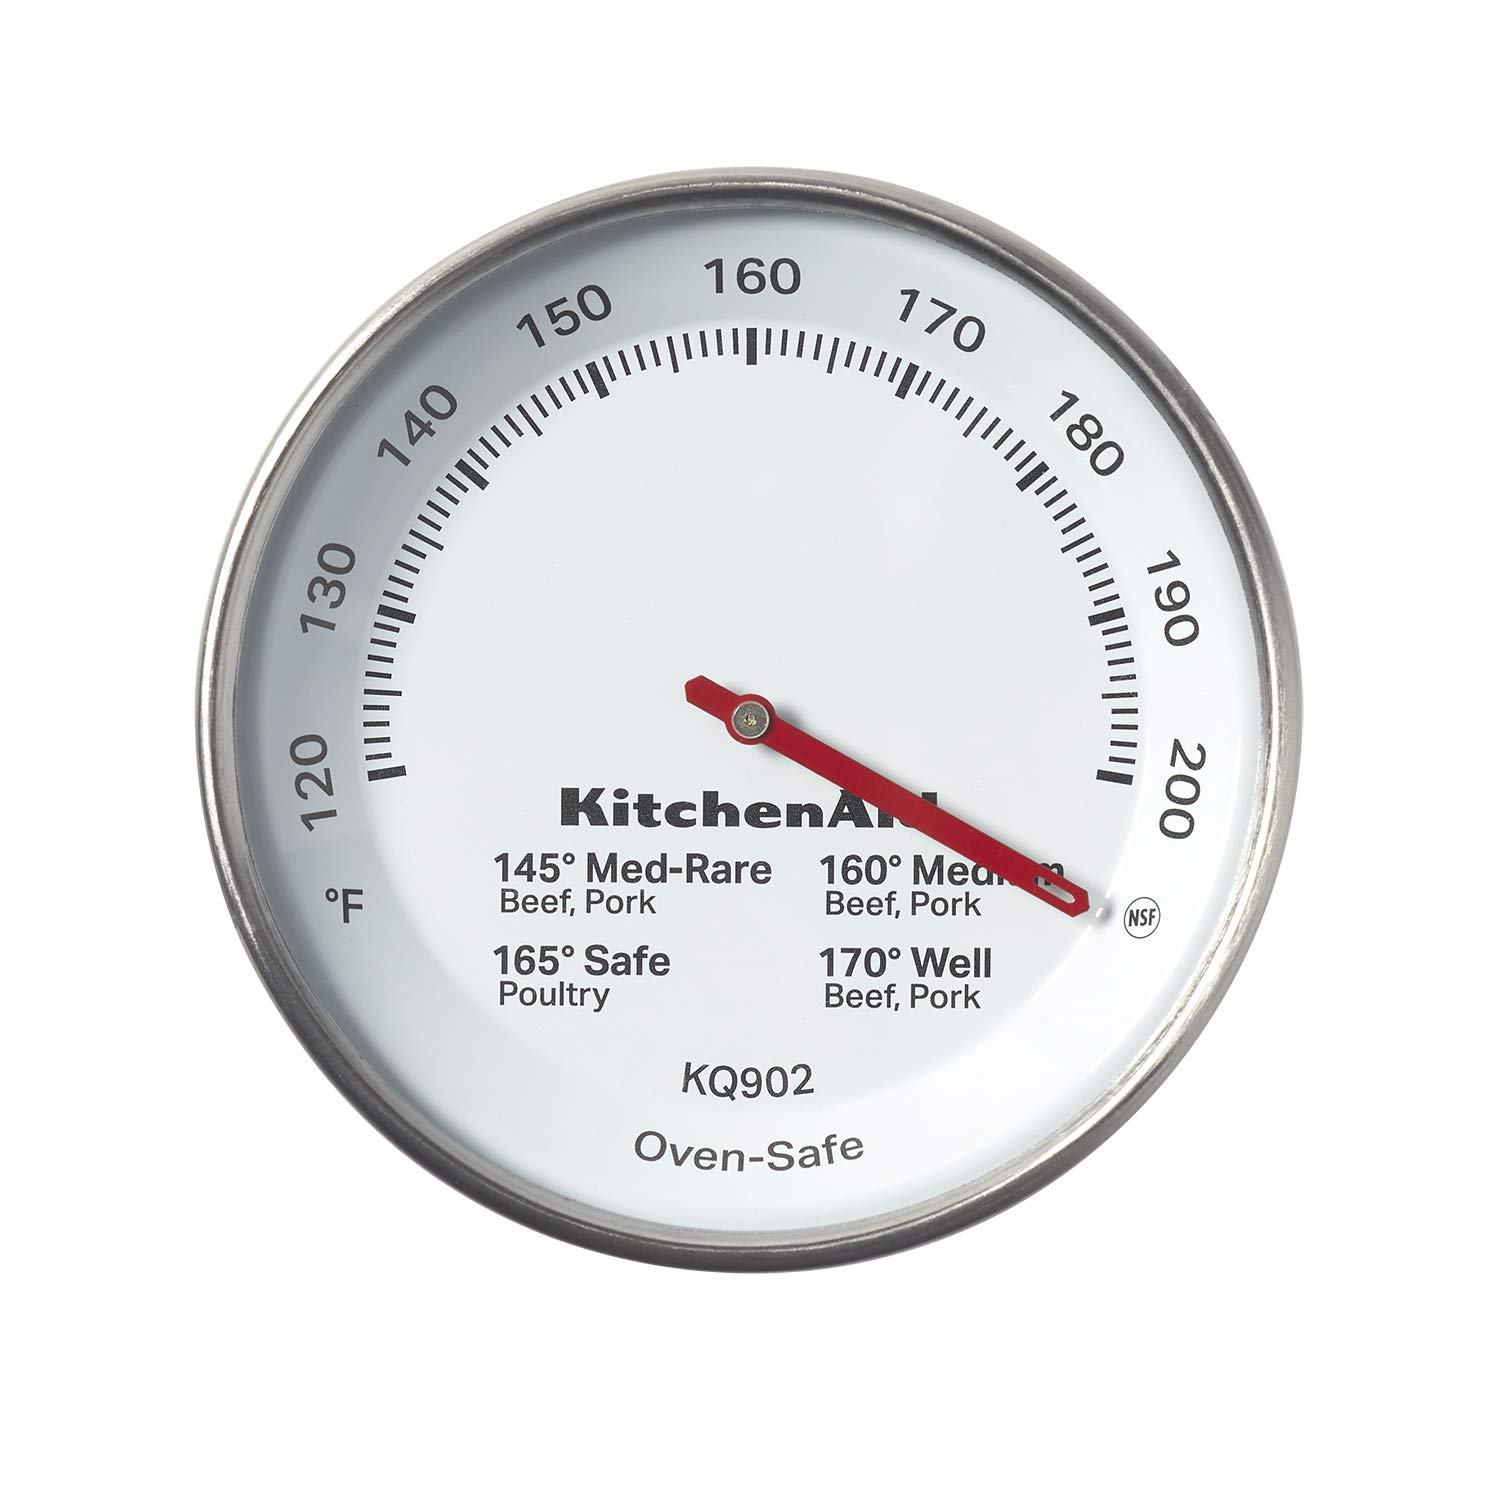 KitchenAid KQ902 Leave-in Meat Thermometer, TEMPERATURE RANGE: 120°F to 200°F, Black